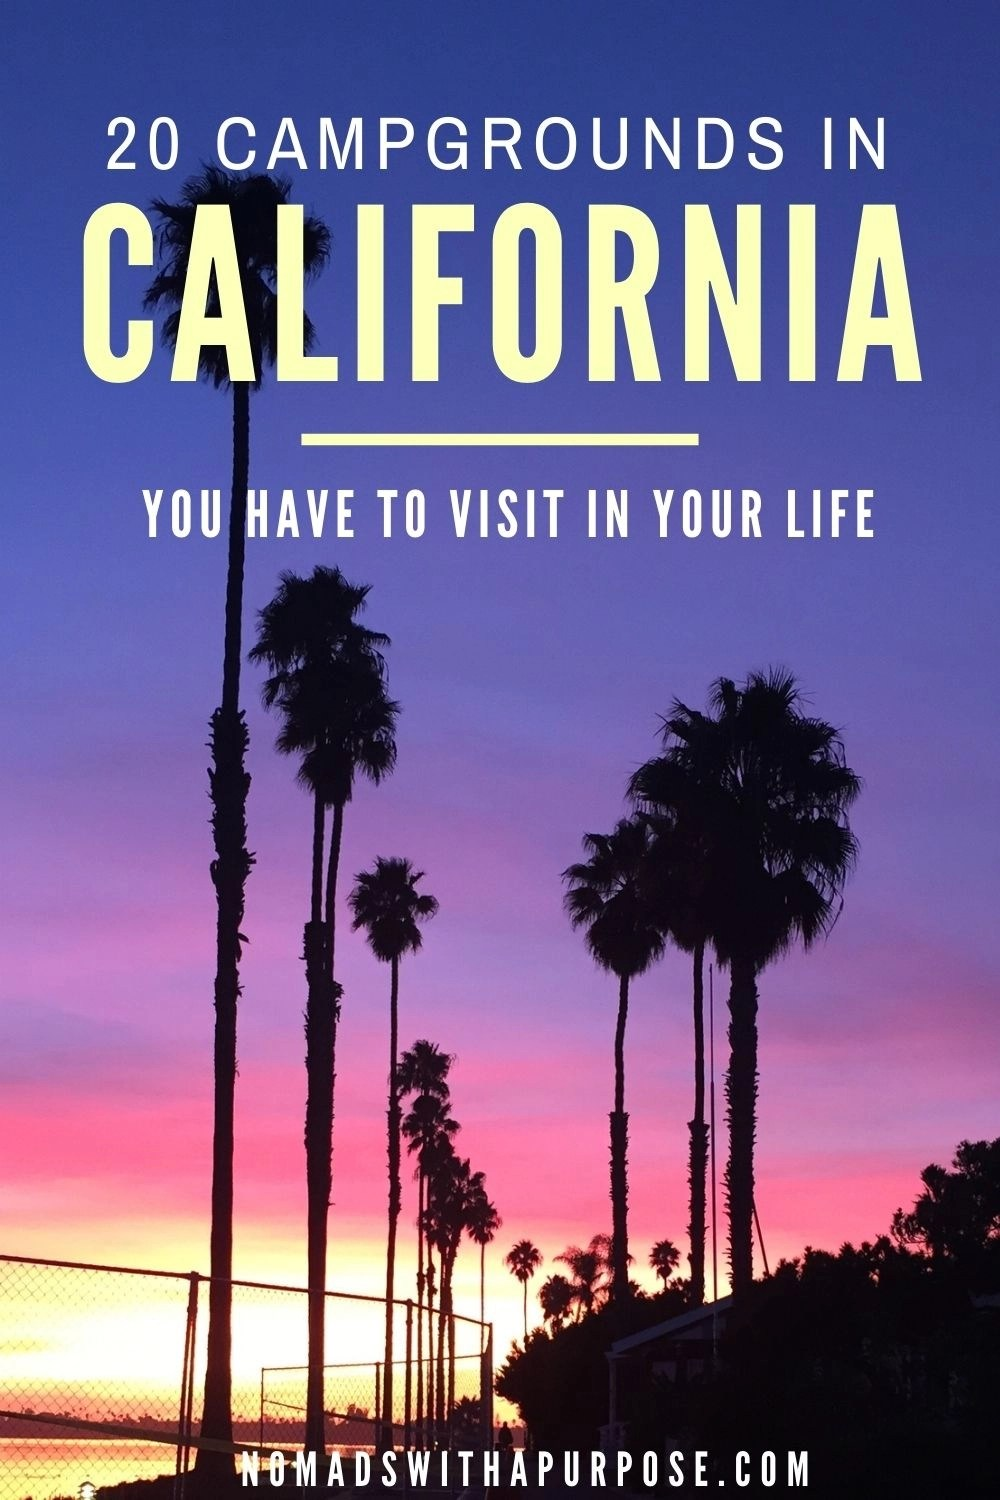 20 Campgrounds In California You Have To Visit In Your Life